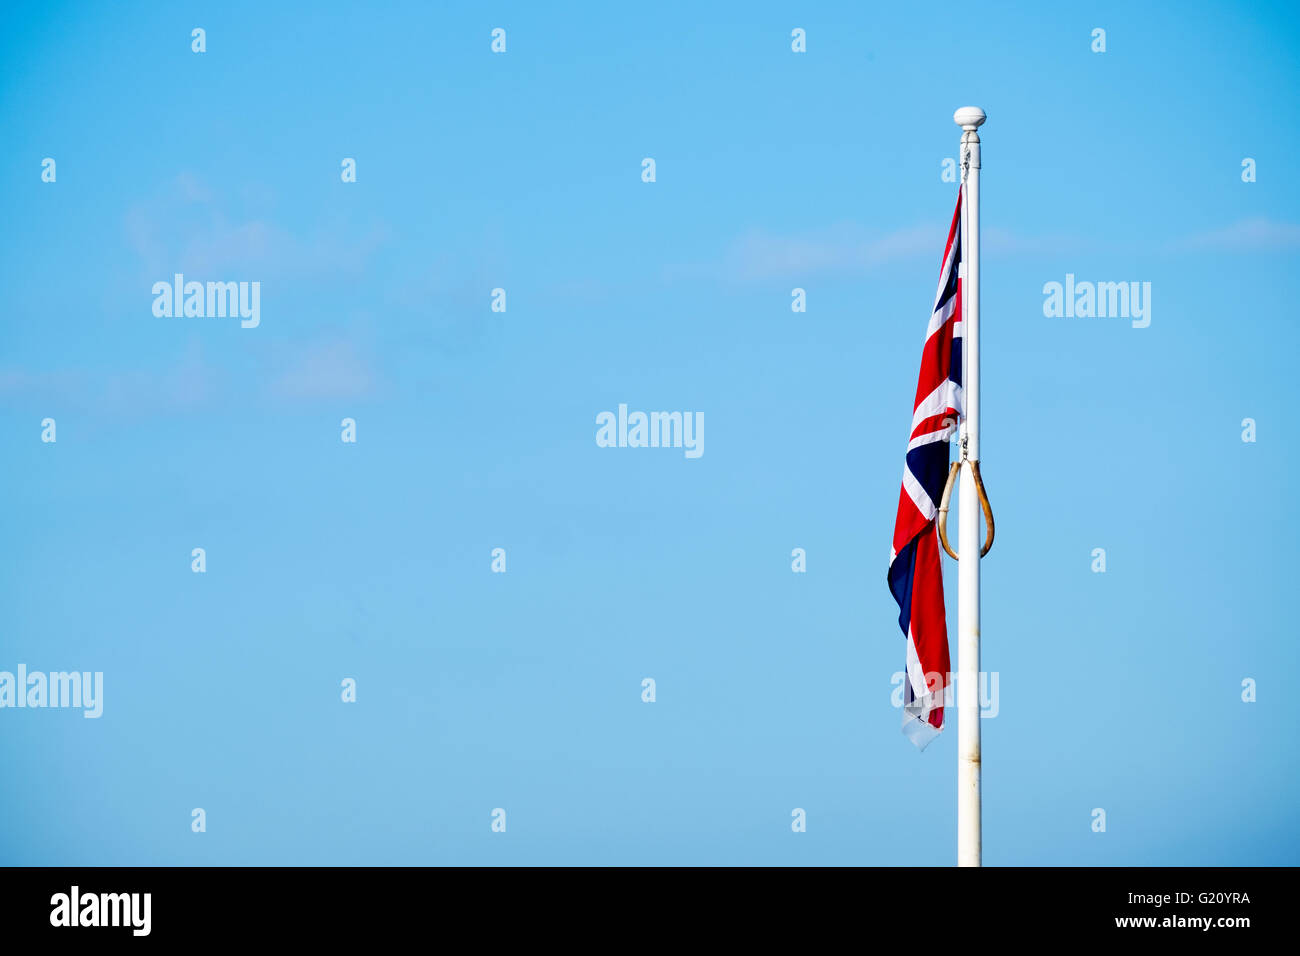 union jack flag flying slack with out wind on a windless day against a clear blue sky. - Stock Image